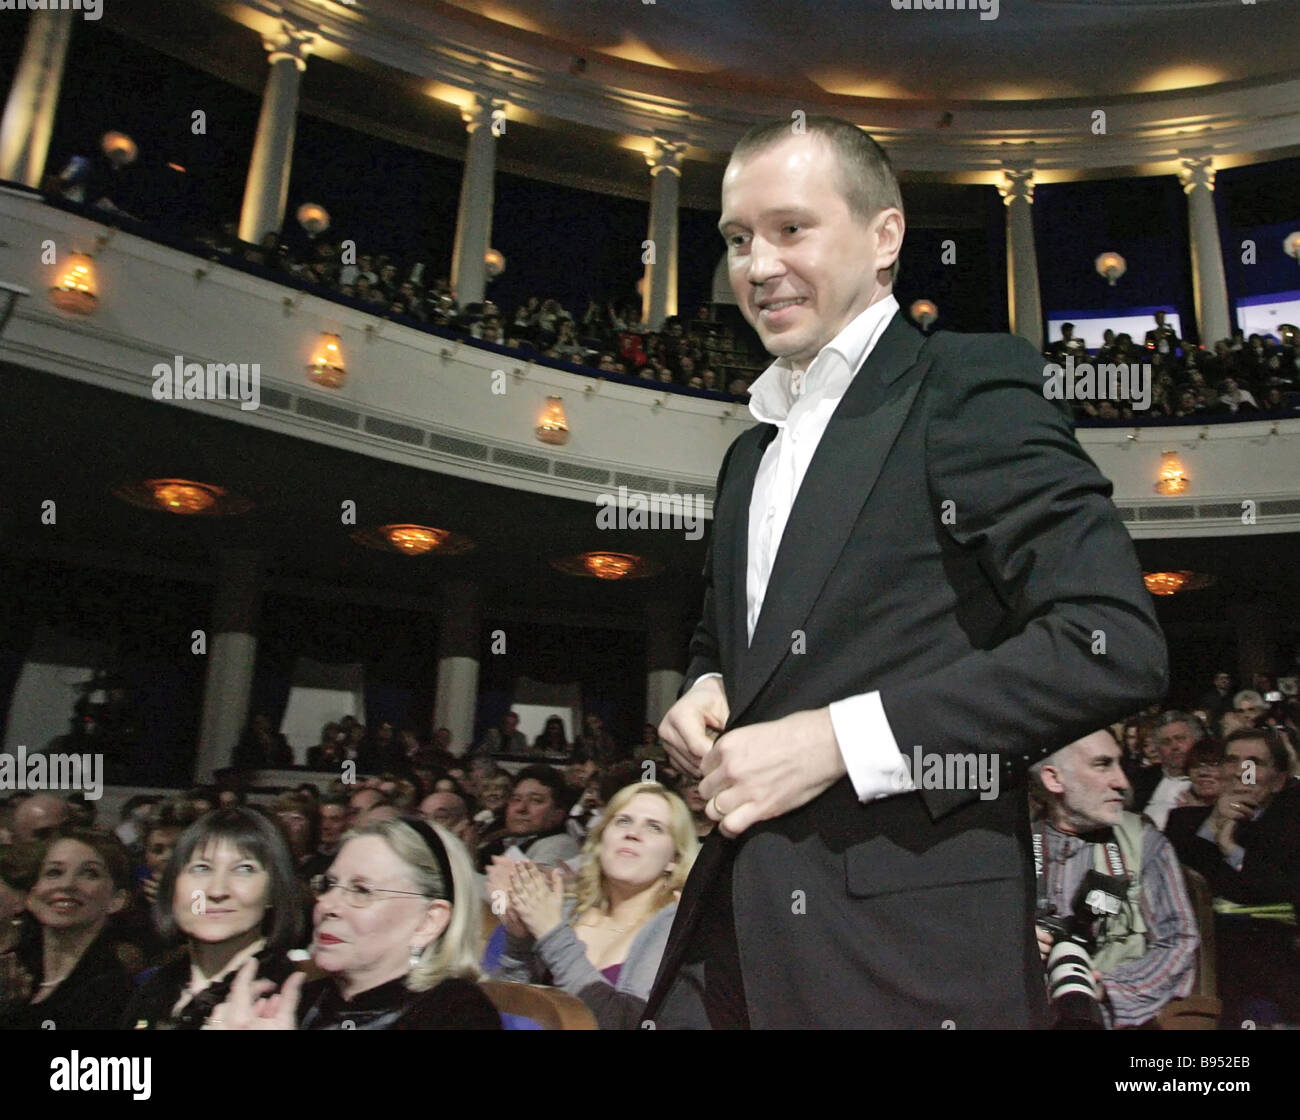 The Golden Mask Theater Award was presented in Moscow 04/18/2015 70